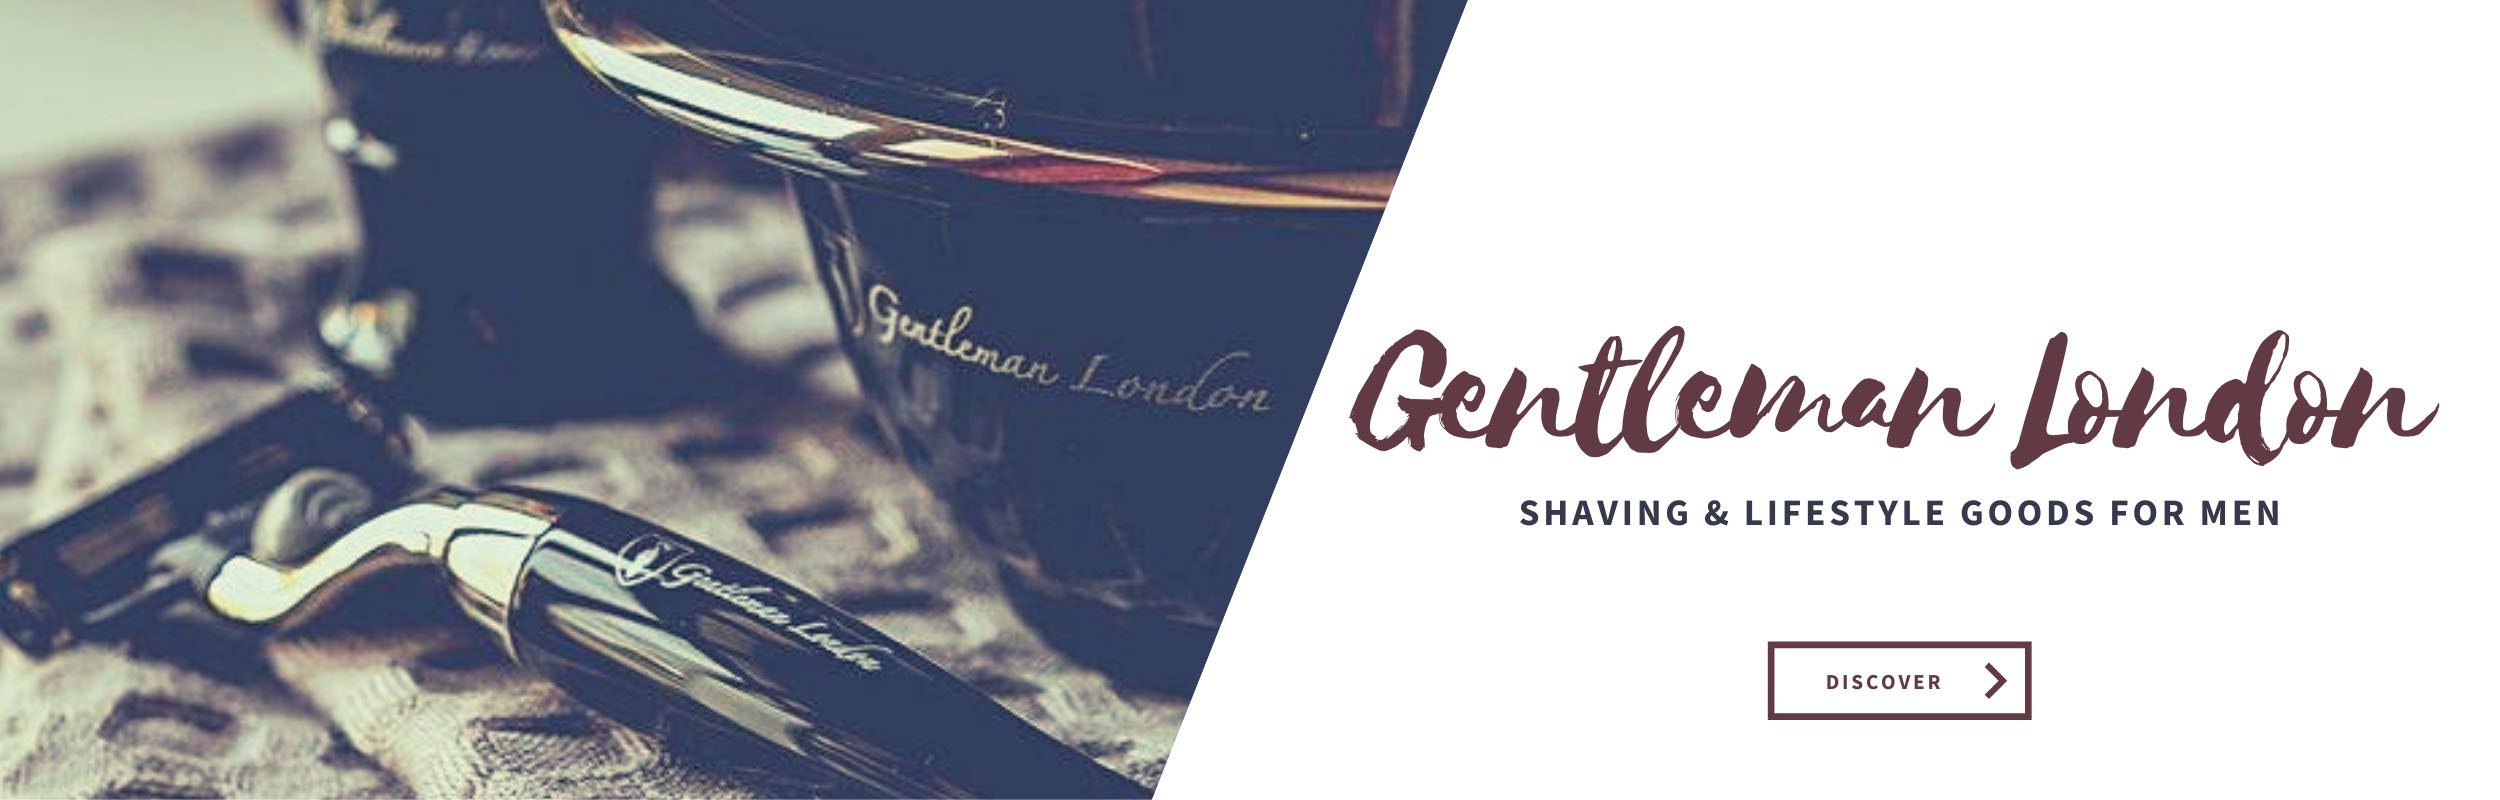 Shave like a Gentleman - Shaving products by Gentleman London - razors, shaving soaps, badger, shaving bowls